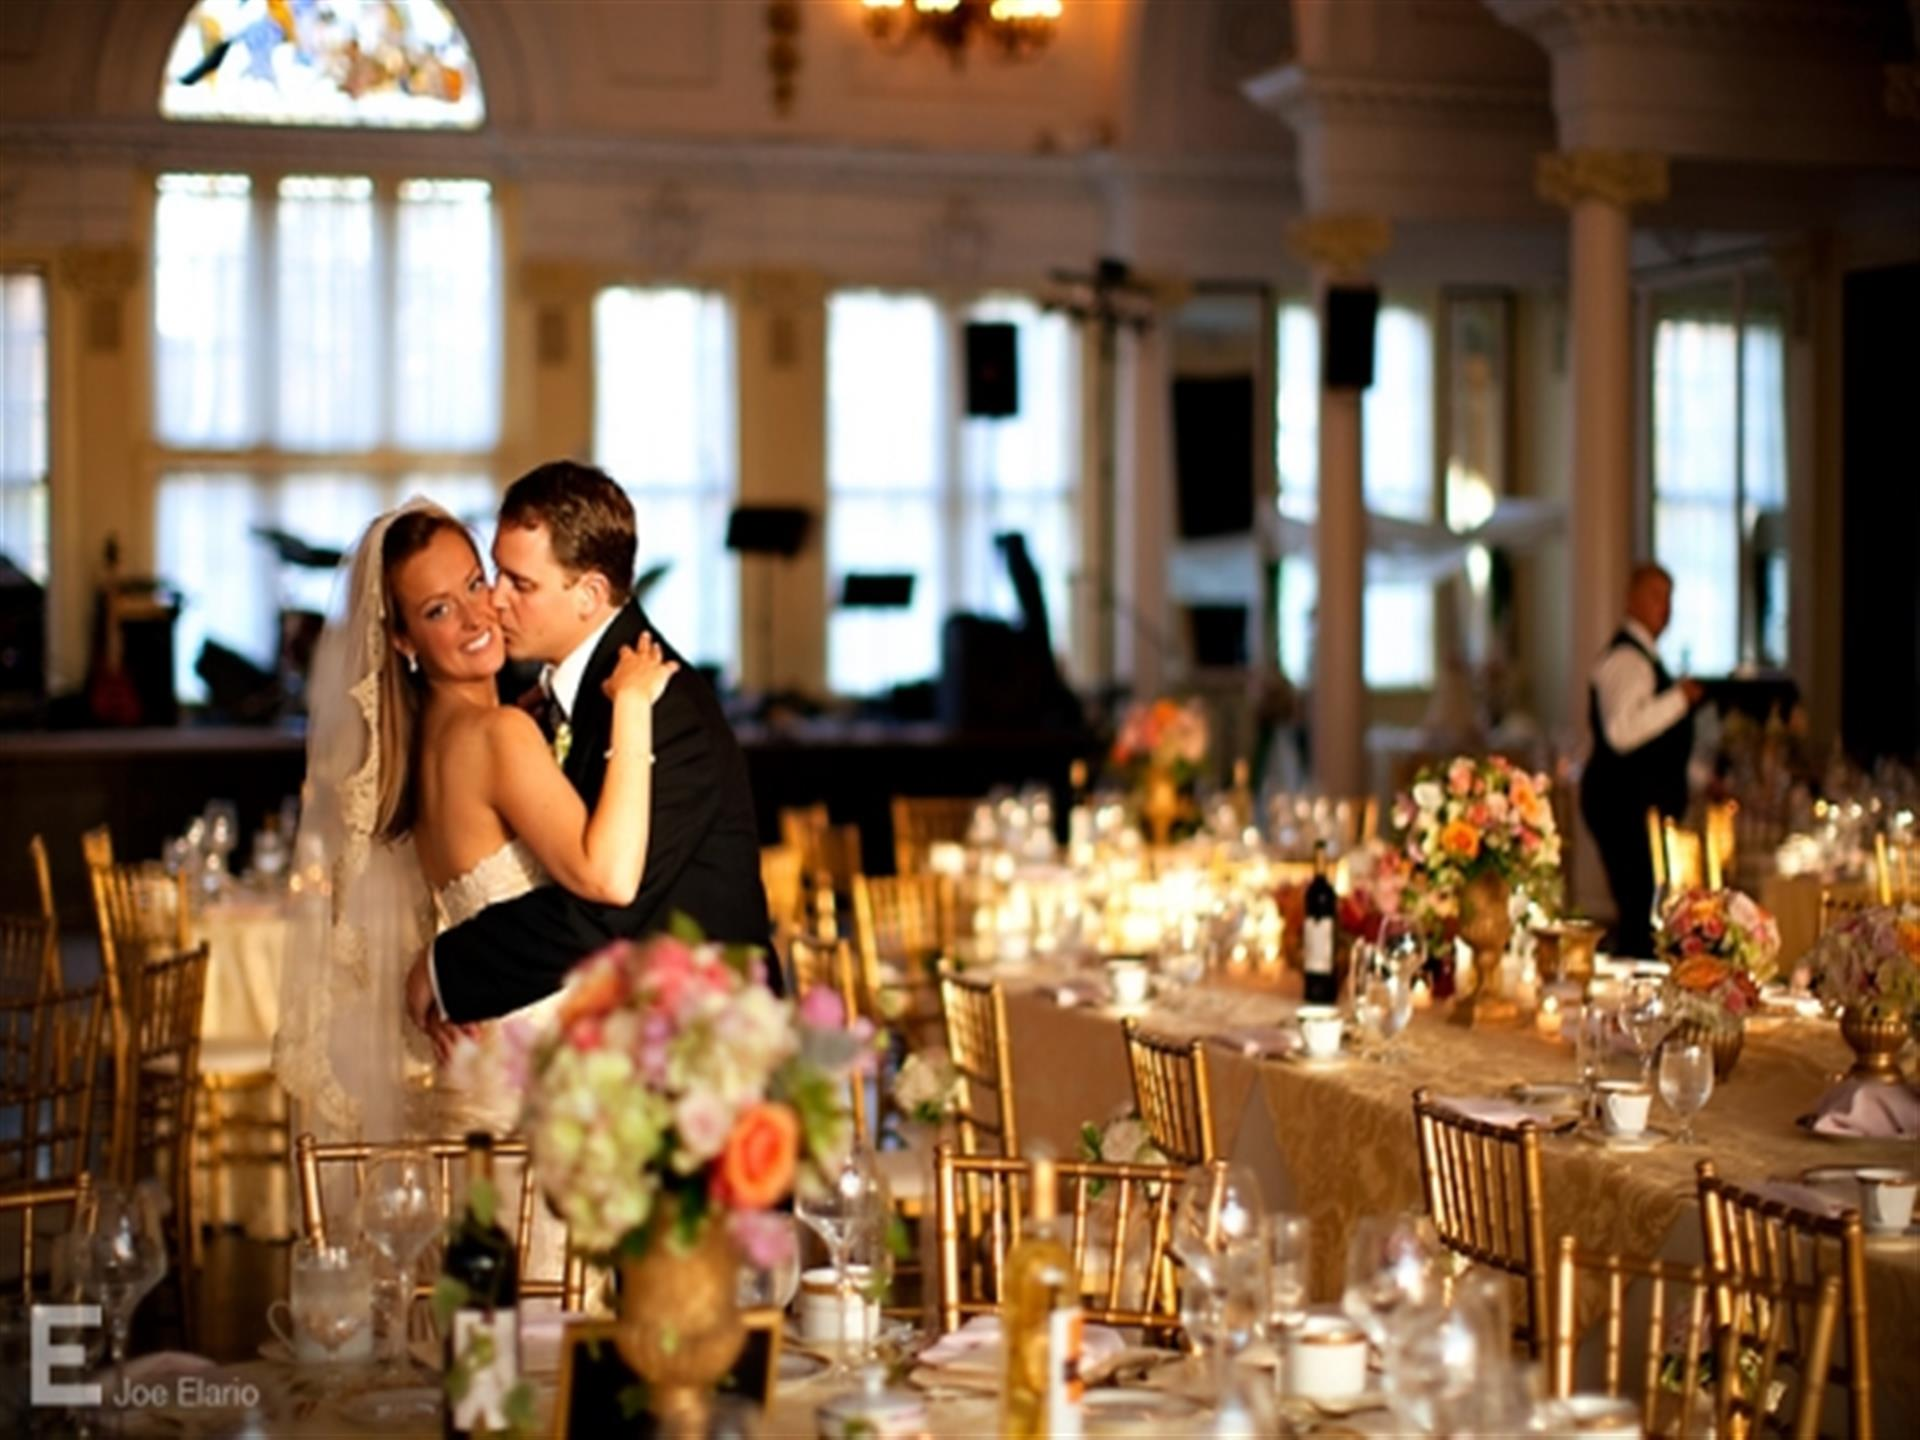 Husband and wife embracing in banquet hall in between covered tables